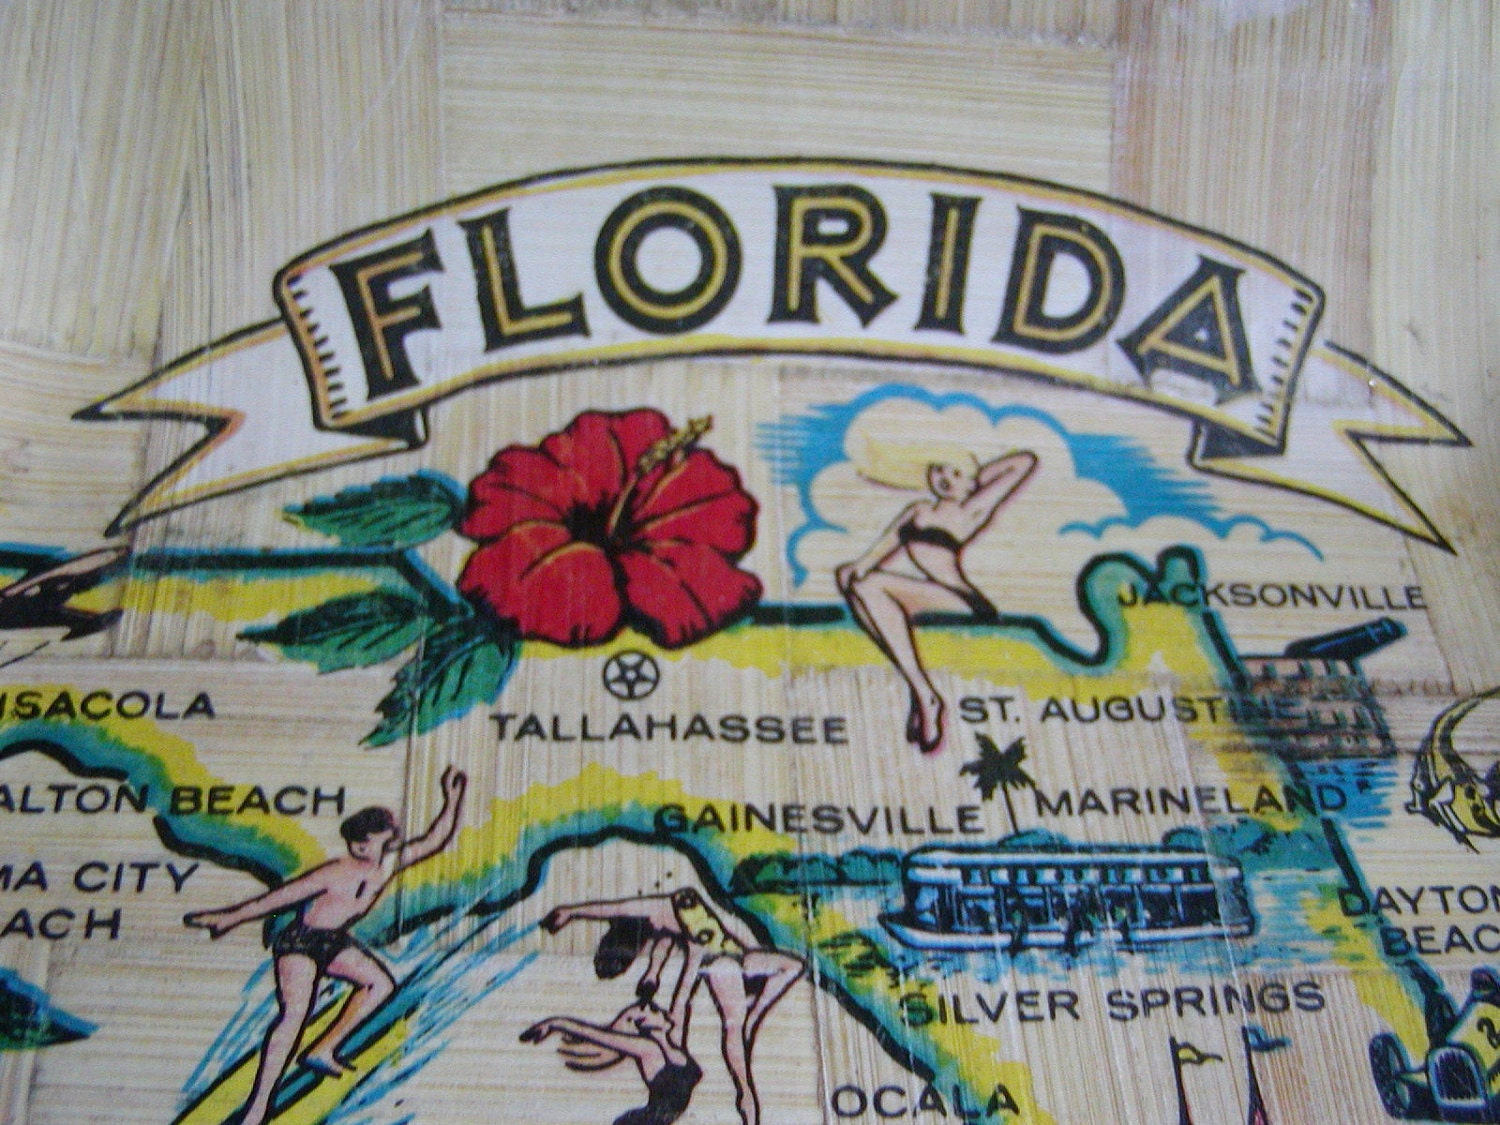 Retro Florida Souvenir Bamboo Bowl of Florida Map by HisPalette – Florida Tourist Attractions Map